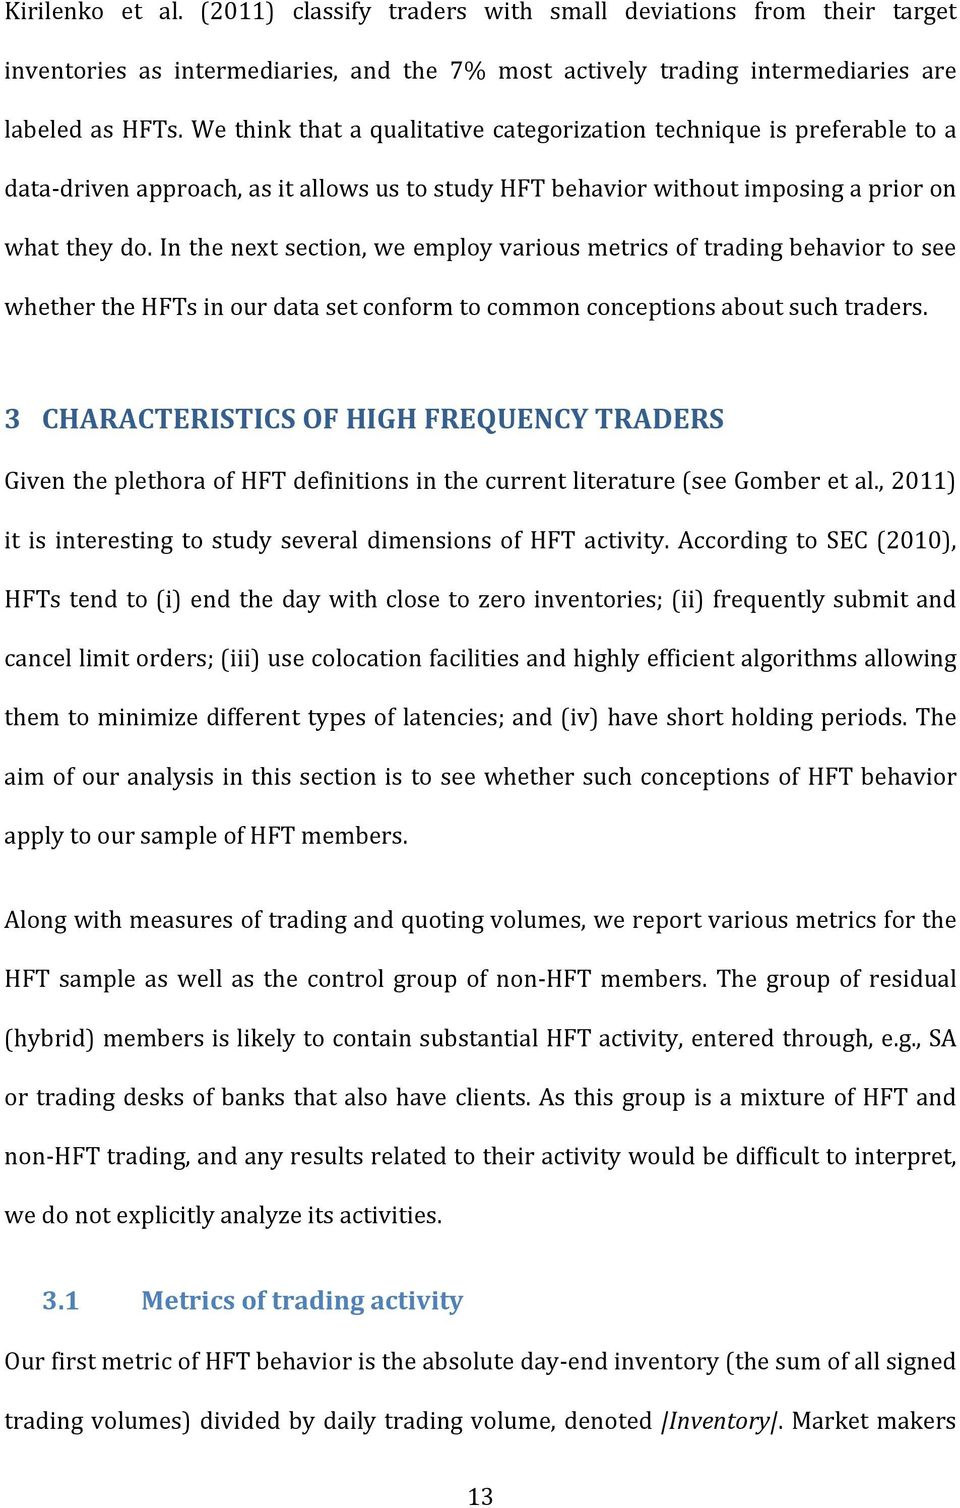 In the next section, we employ various metrics of trading behavior to see whether the HFTs in our data set conform to common conceptions about such traders.